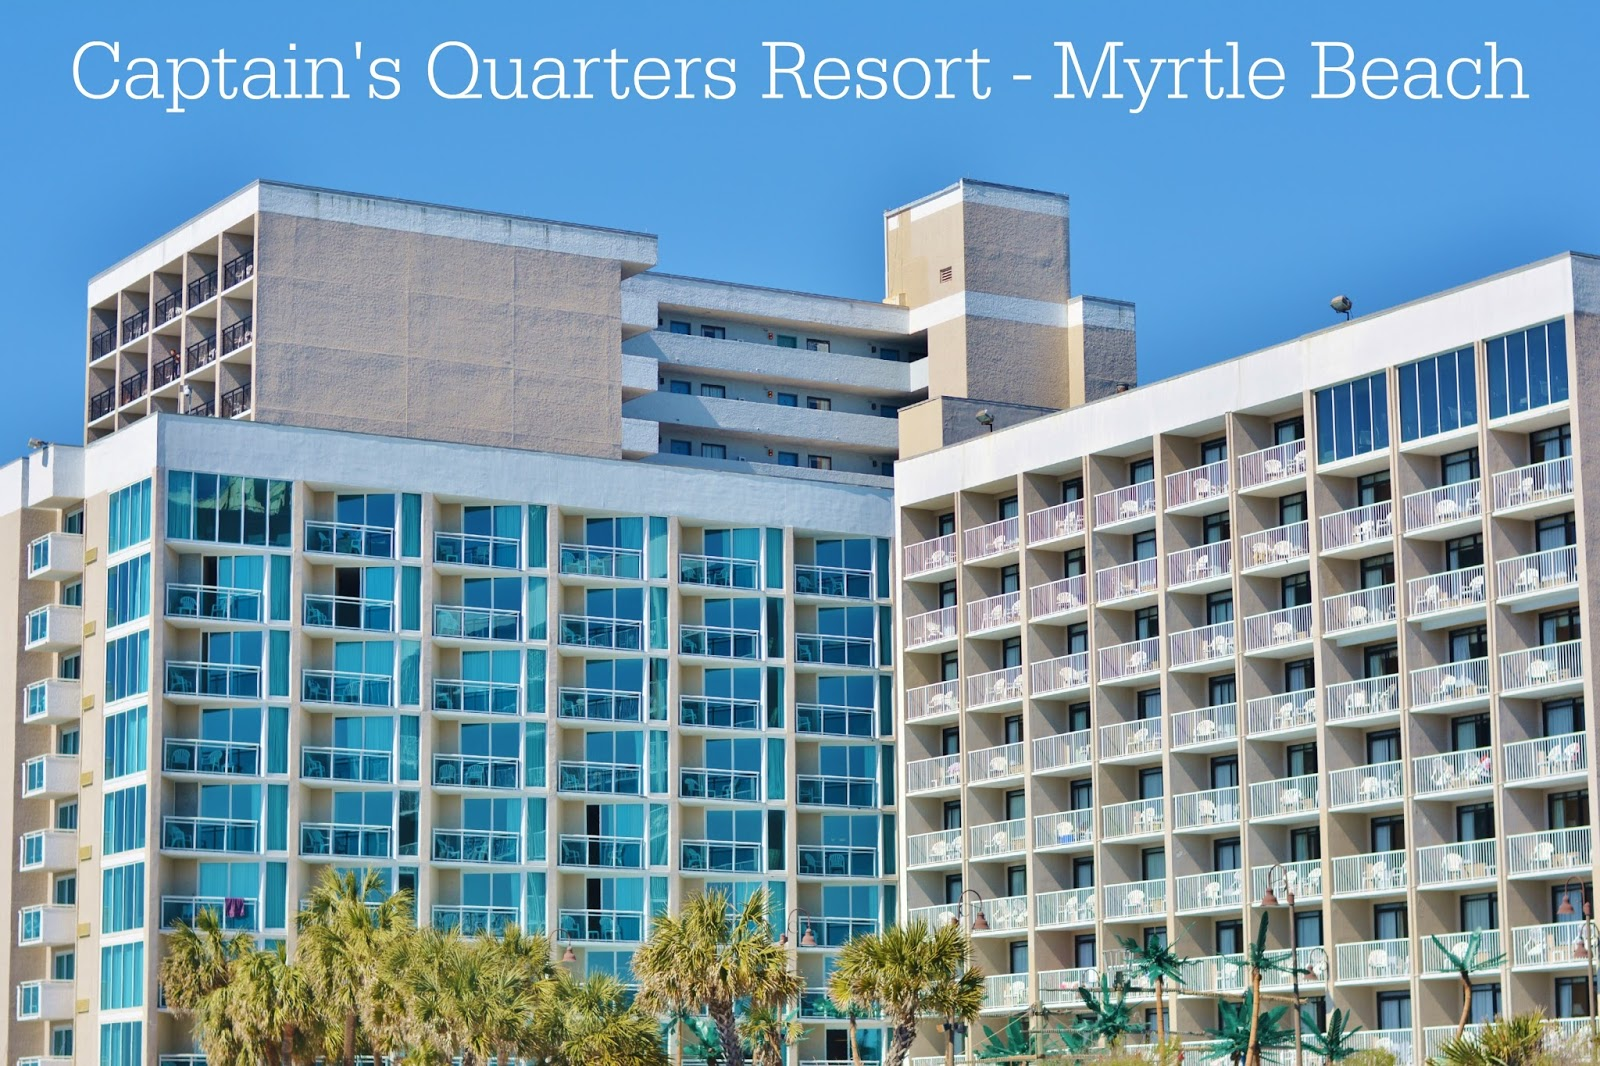 The Captain's Quarters Resort in Myrtle Beach is affordable and packed with family friendly amenities! #travel #familytravel